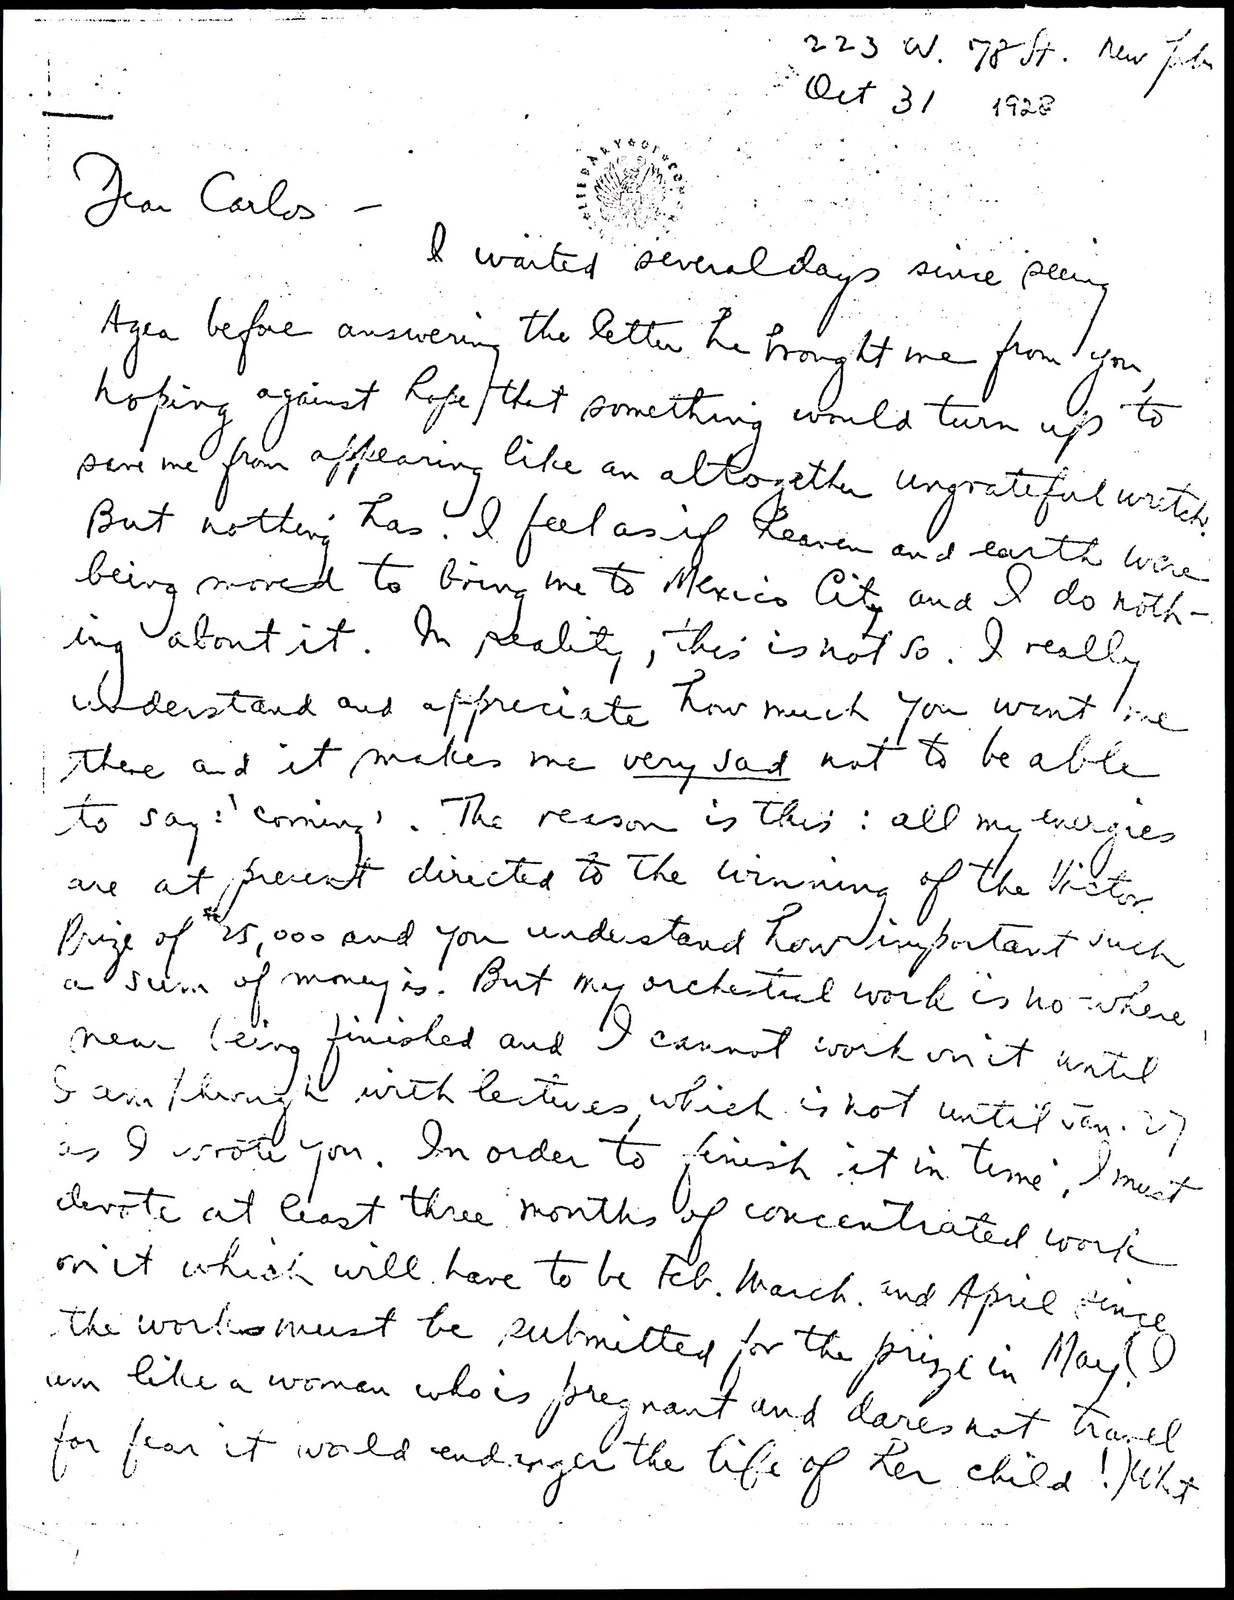 Letter from Aaron Copland to Carlos Chávez, October 31, 1928.